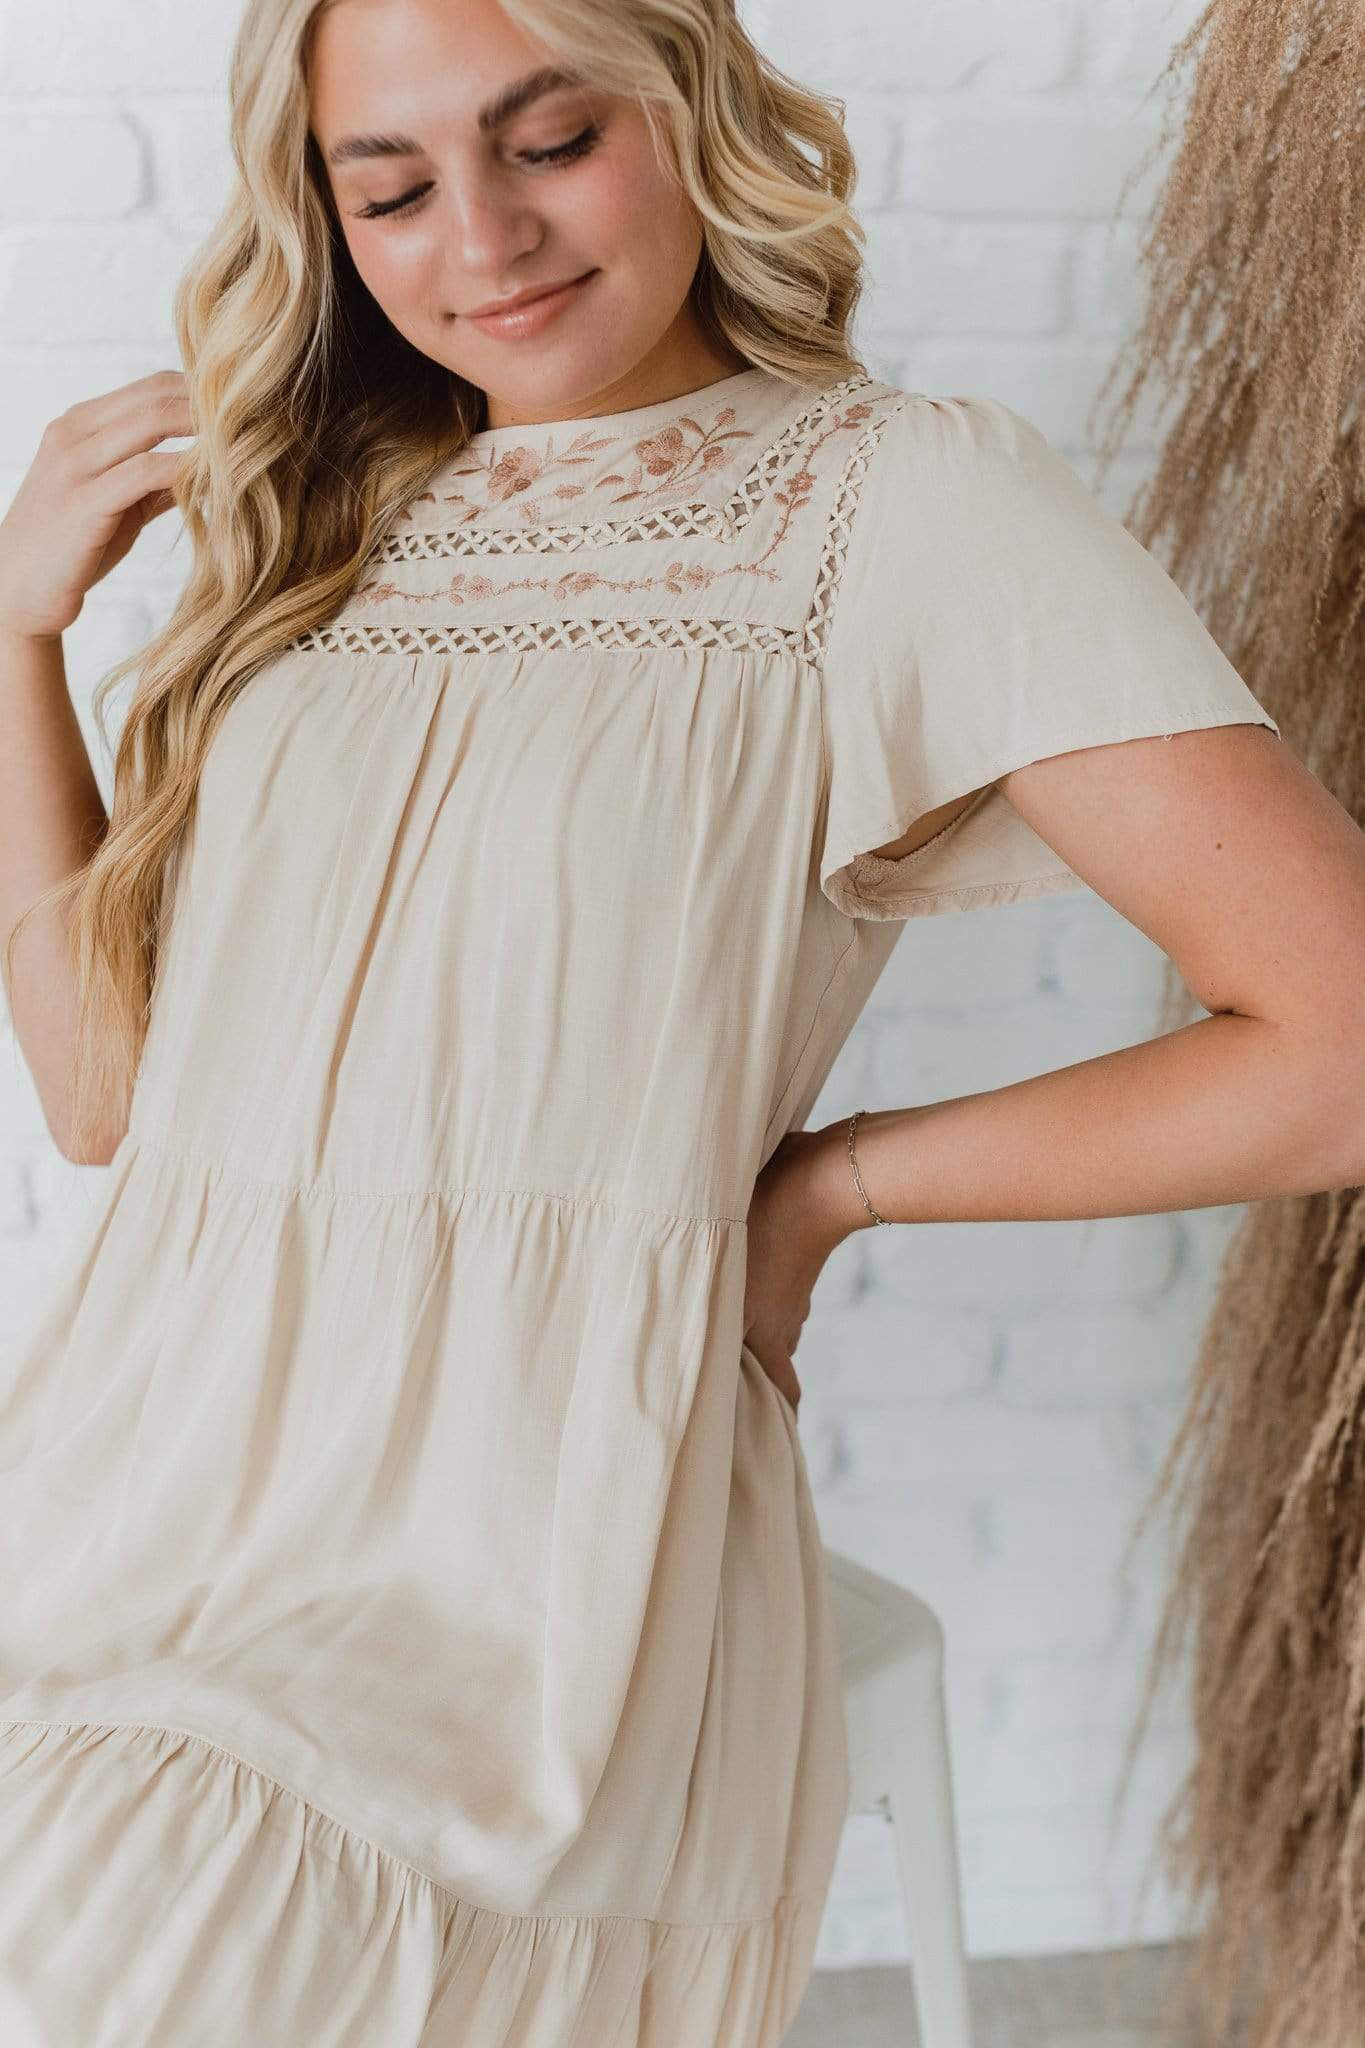 The Sweetwater Embroidered Dress